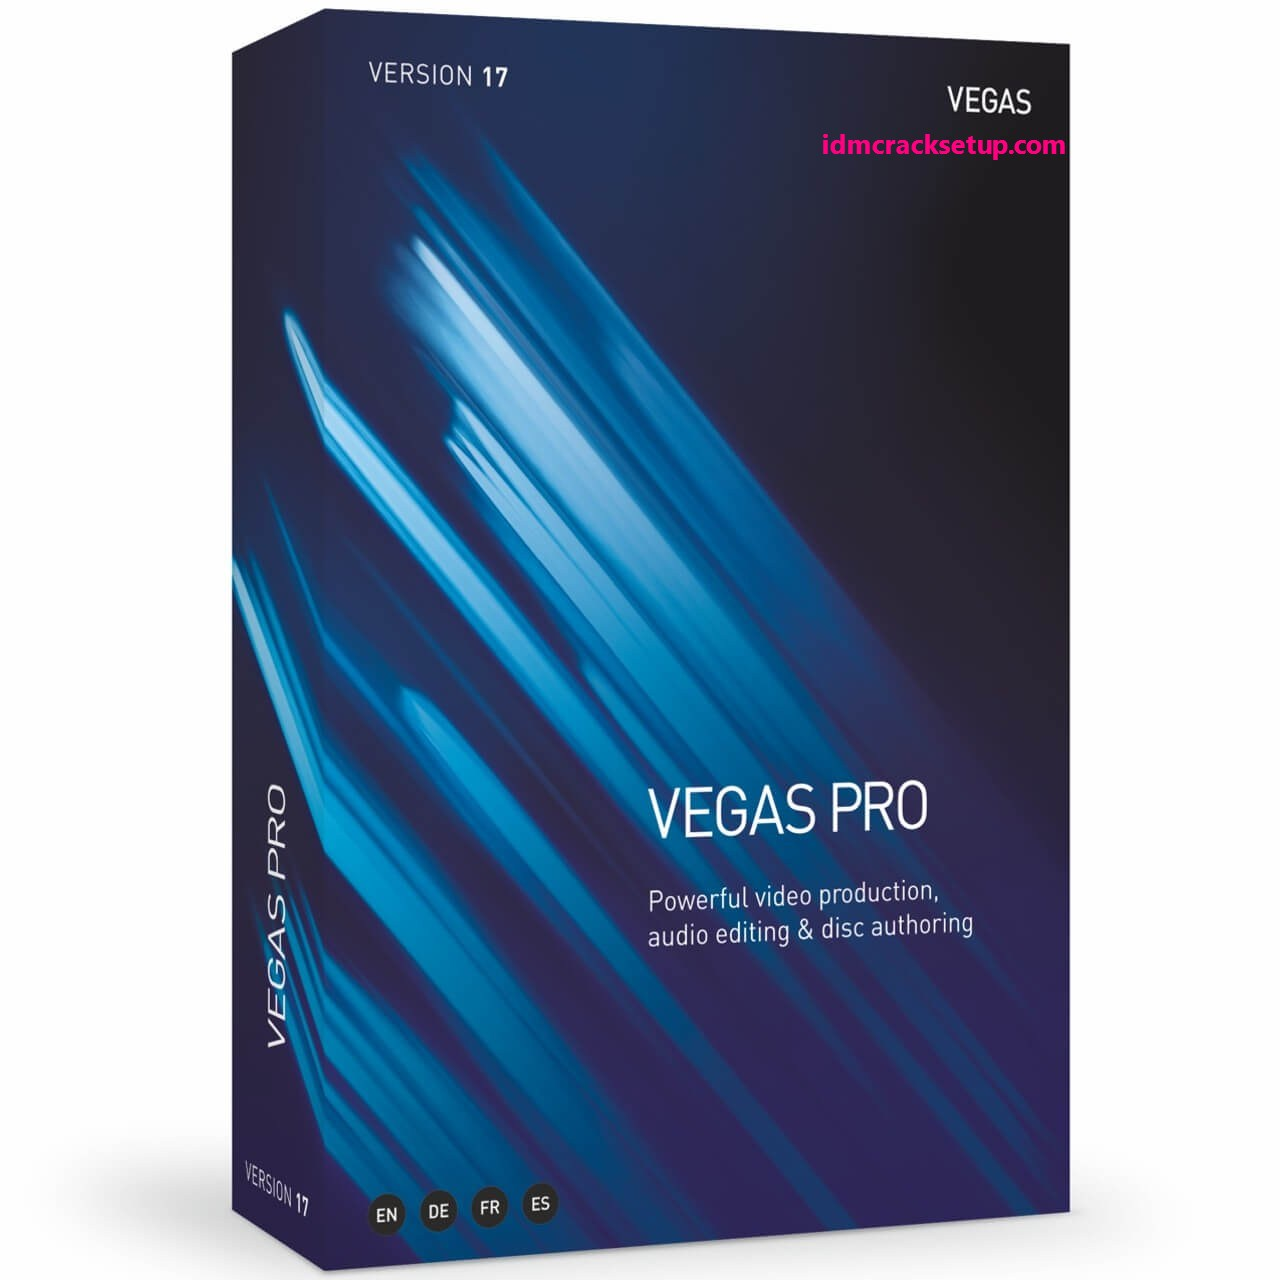 Sony VEGAS Pro 18.0.284 Crack With Product Key Free Download [2020]